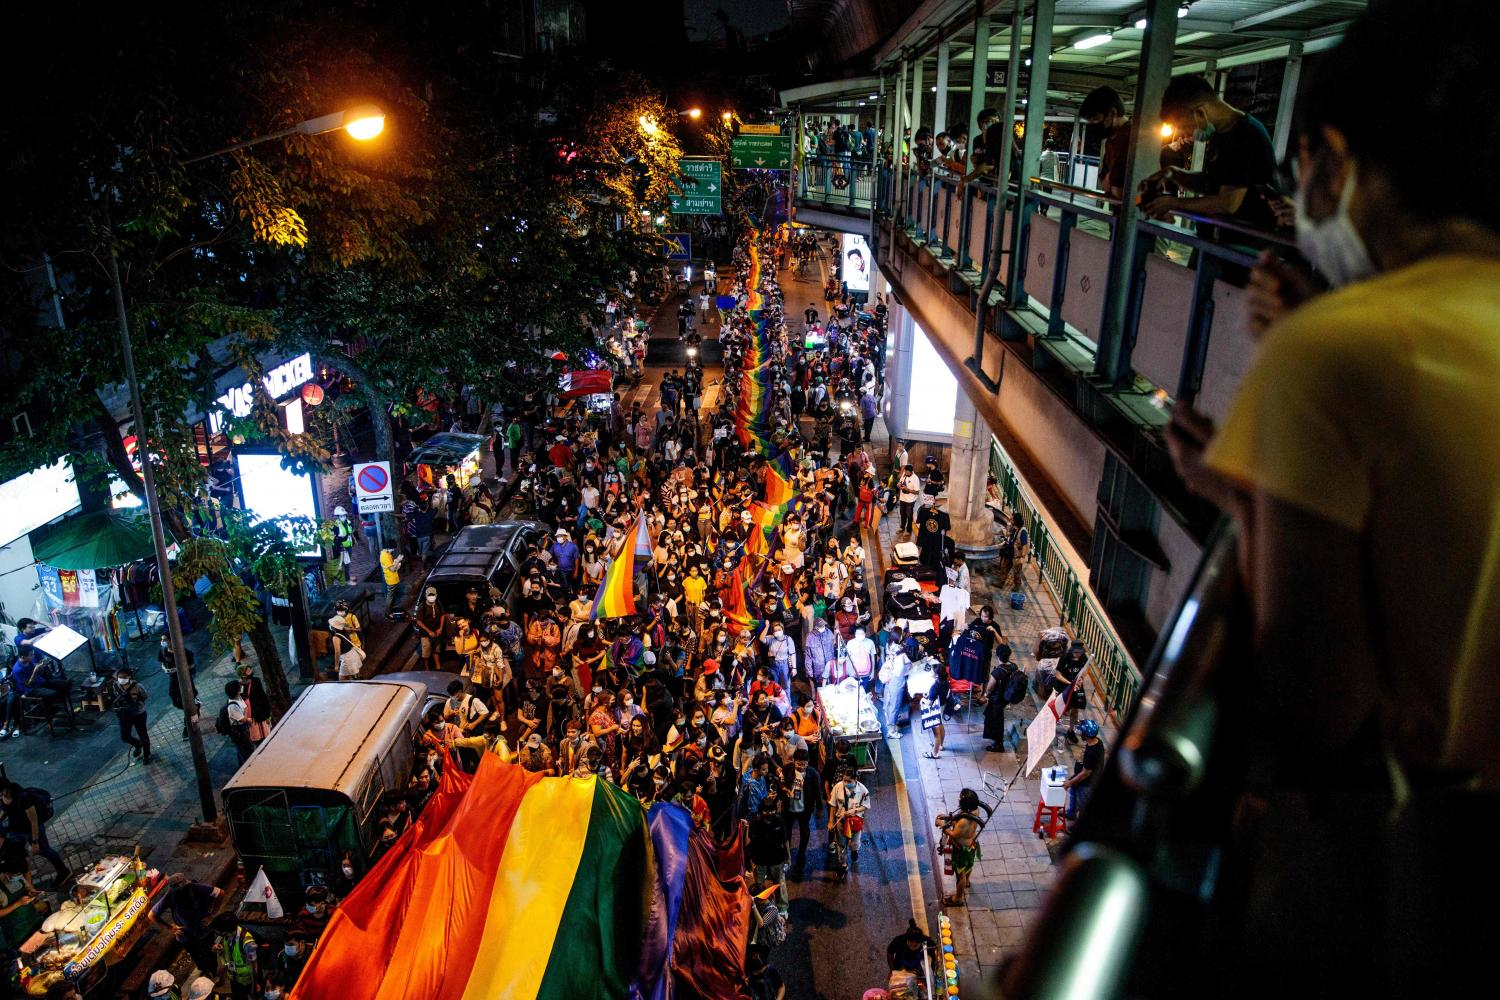 LGBTQ activists carry a giant rainbow banner during the Pride Parade as they march towards Silom on Saturday night.